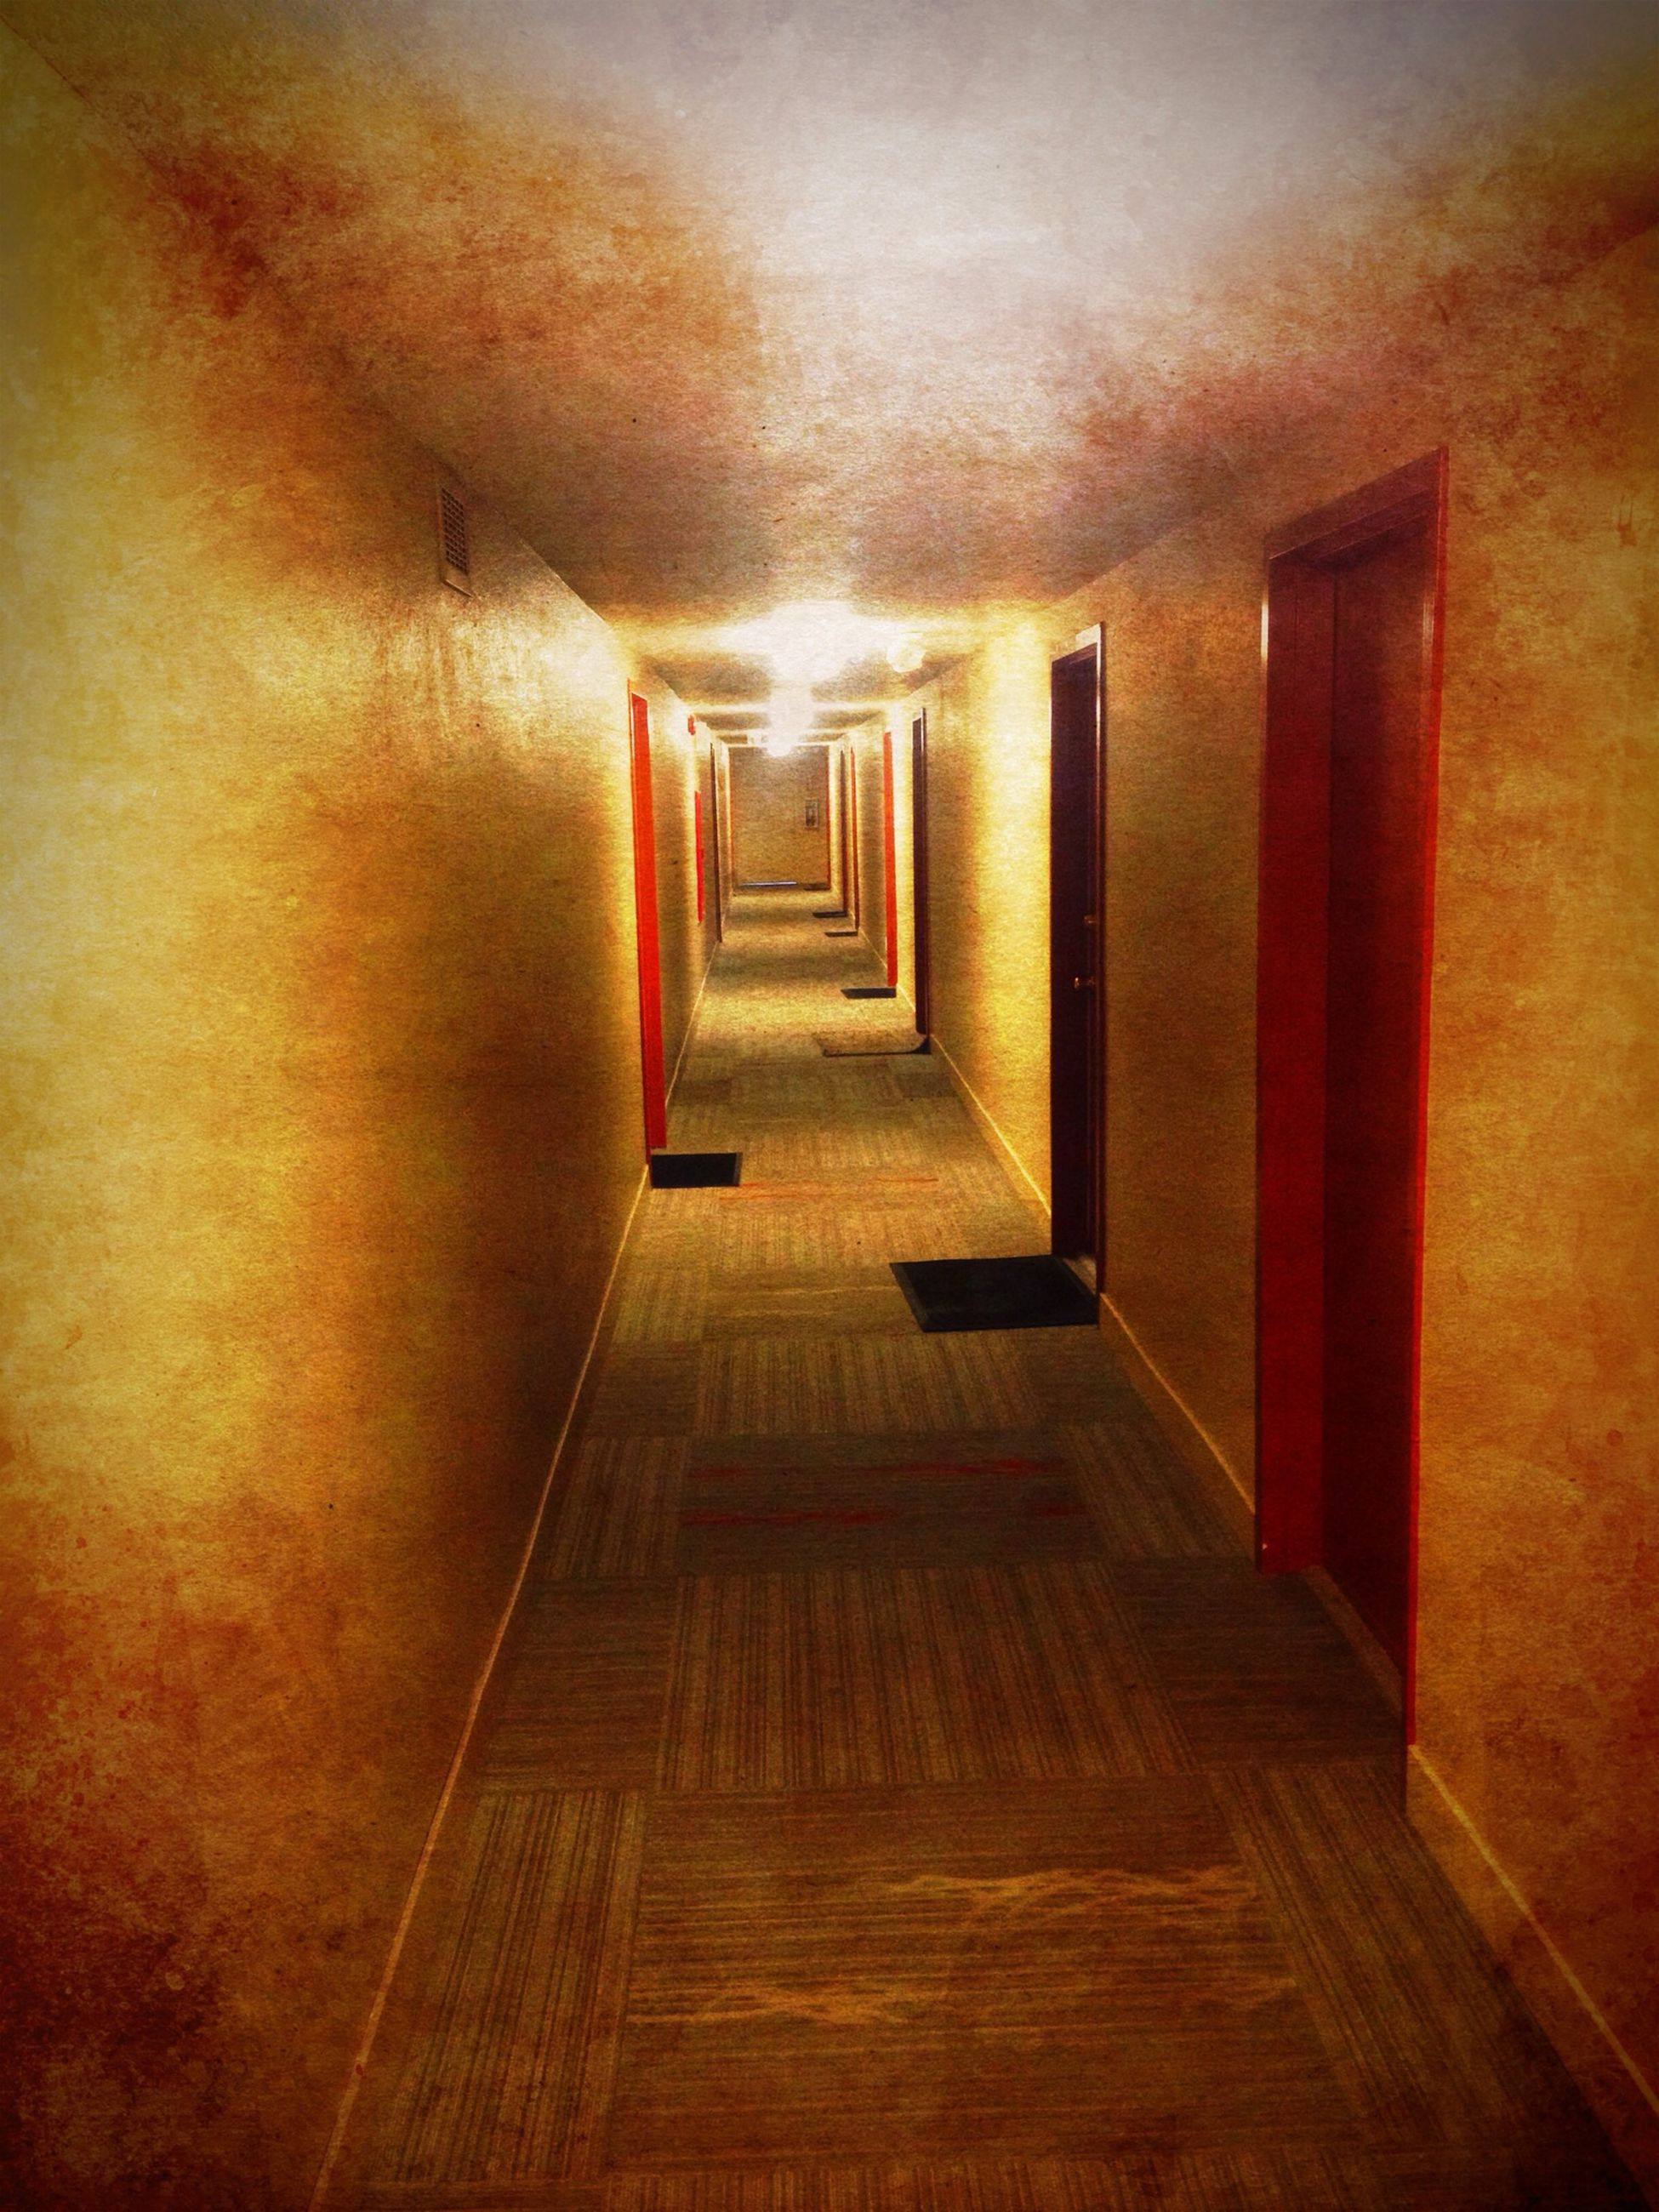 indoors, the way forward, corridor, architecture, built structure, diminishing perspective, illuminated, empty, narrow, wall - building feature, absence, flooring, ceiling, vanishing point, lighting equipment, no people, wall, walkway, long, building